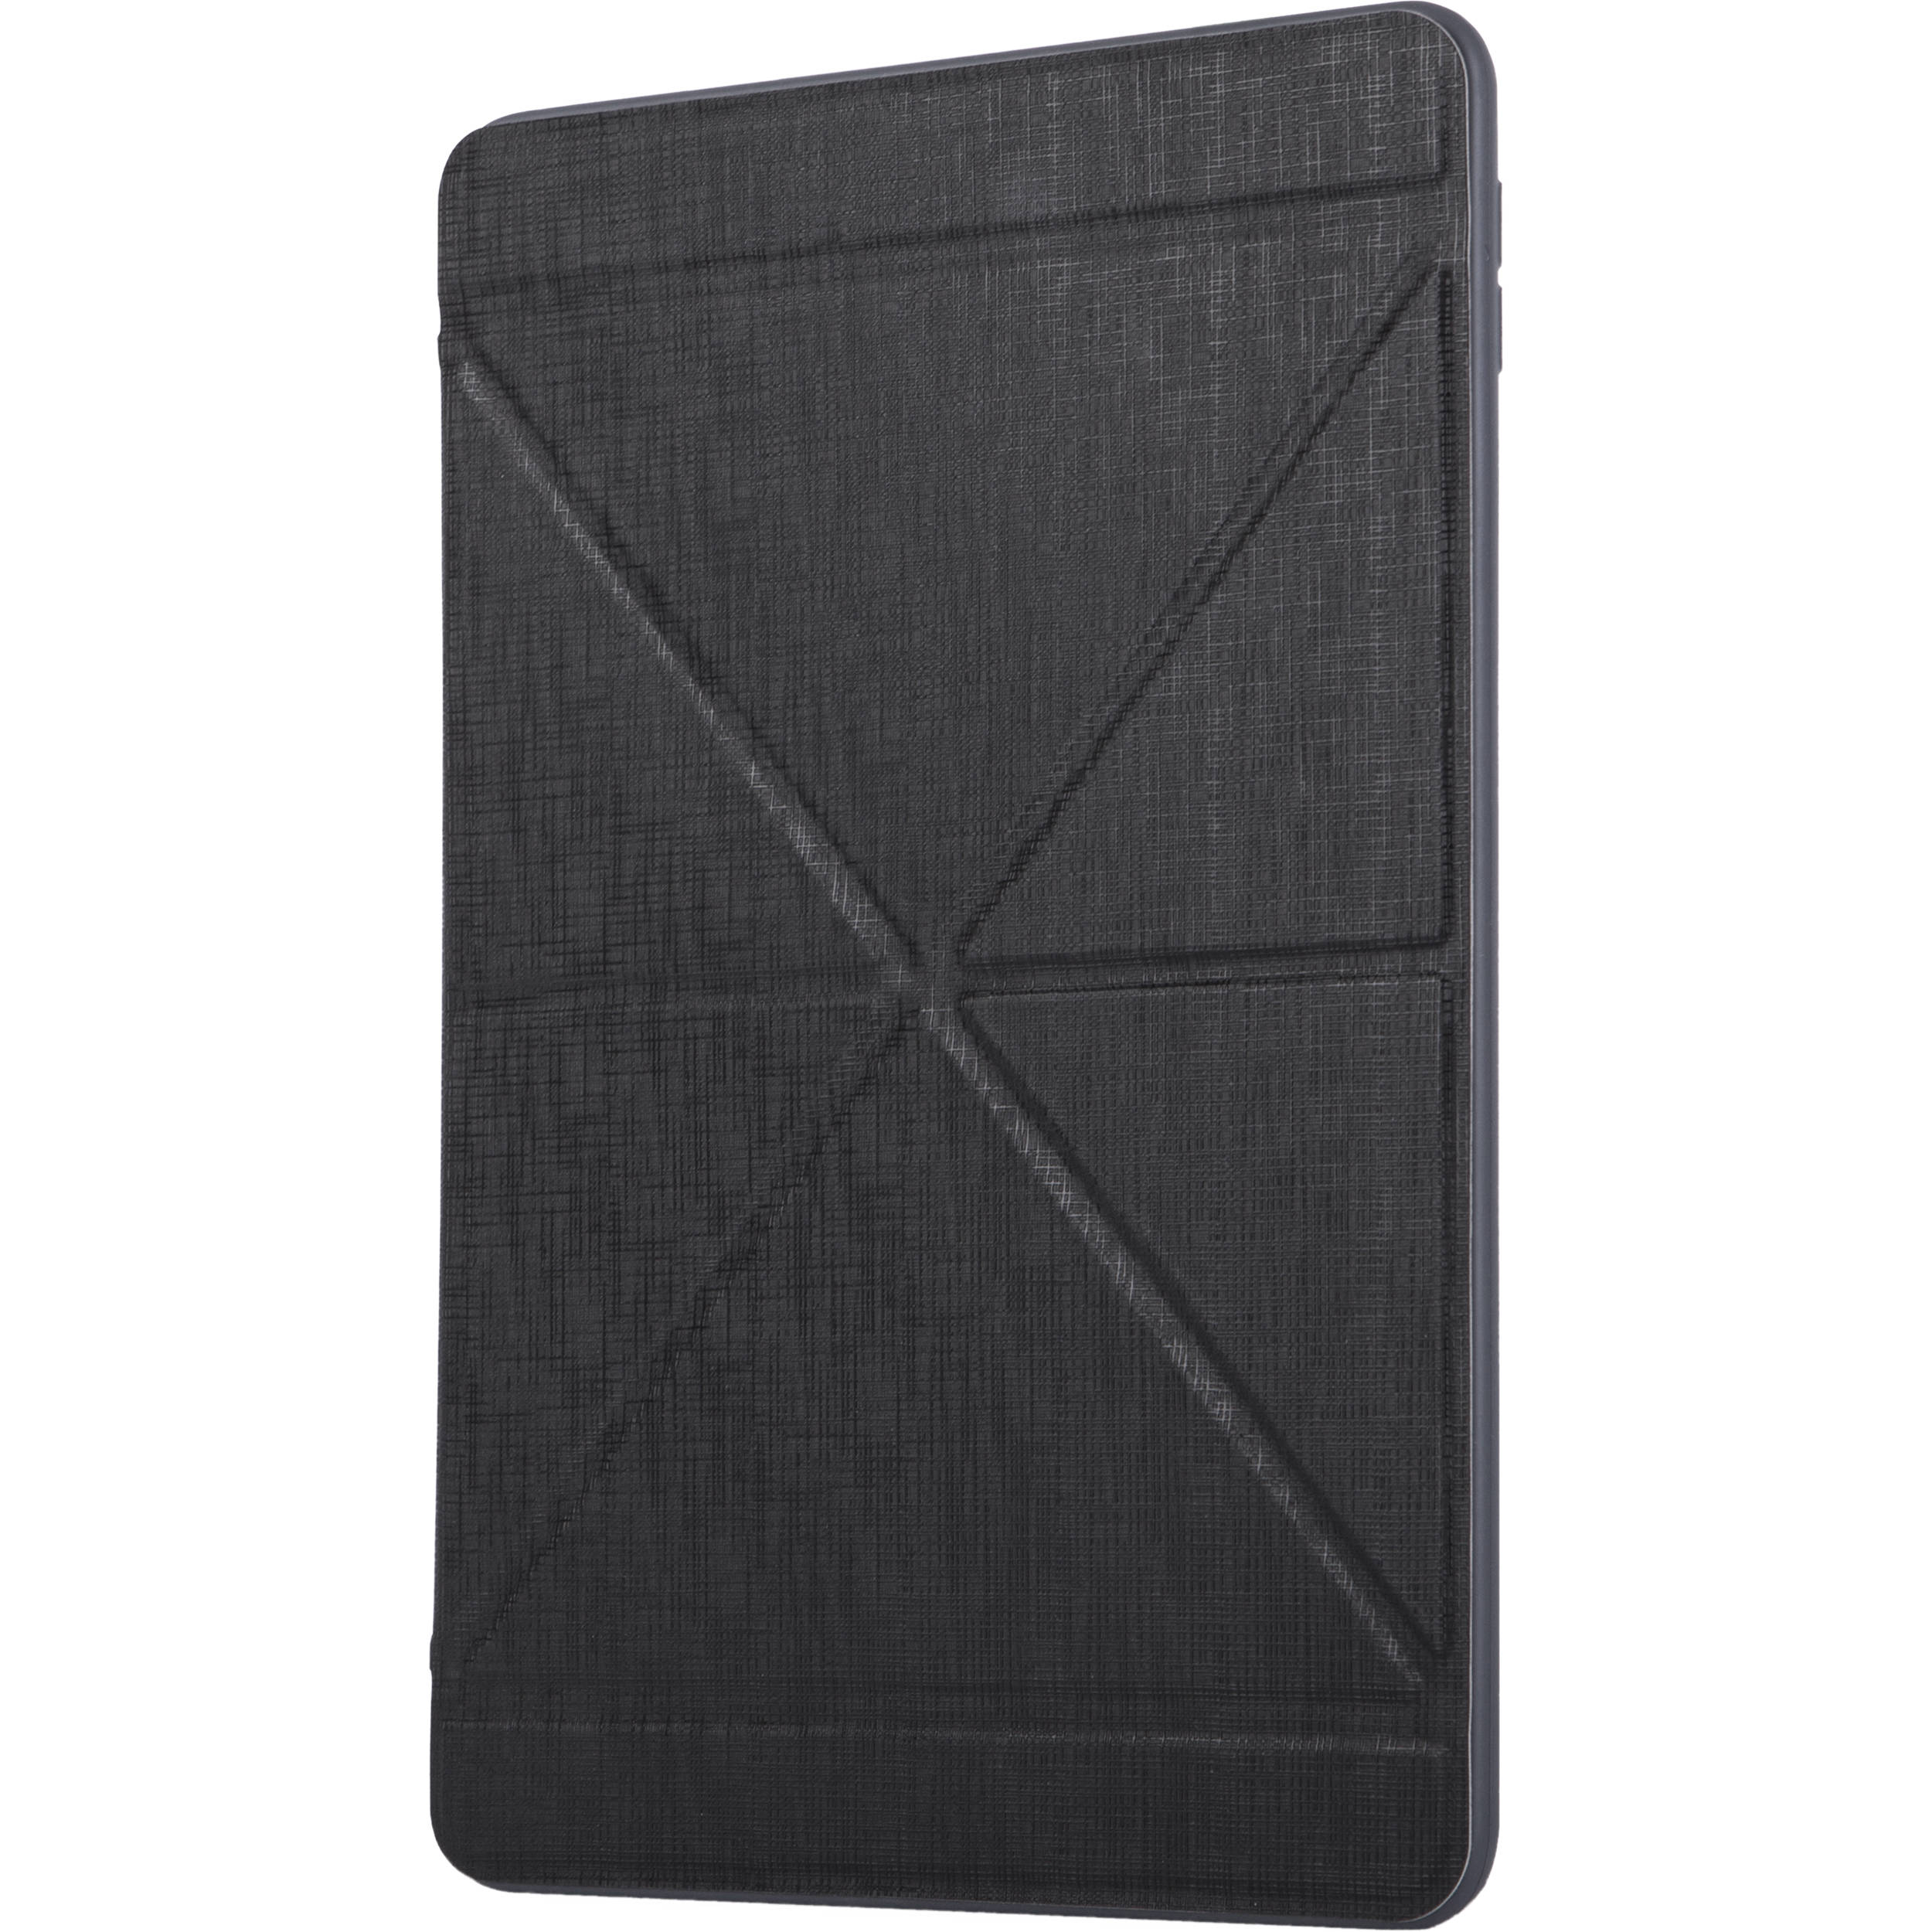 low priced 35af4 ec67a Moshi VersaCover iPad Case (Black)